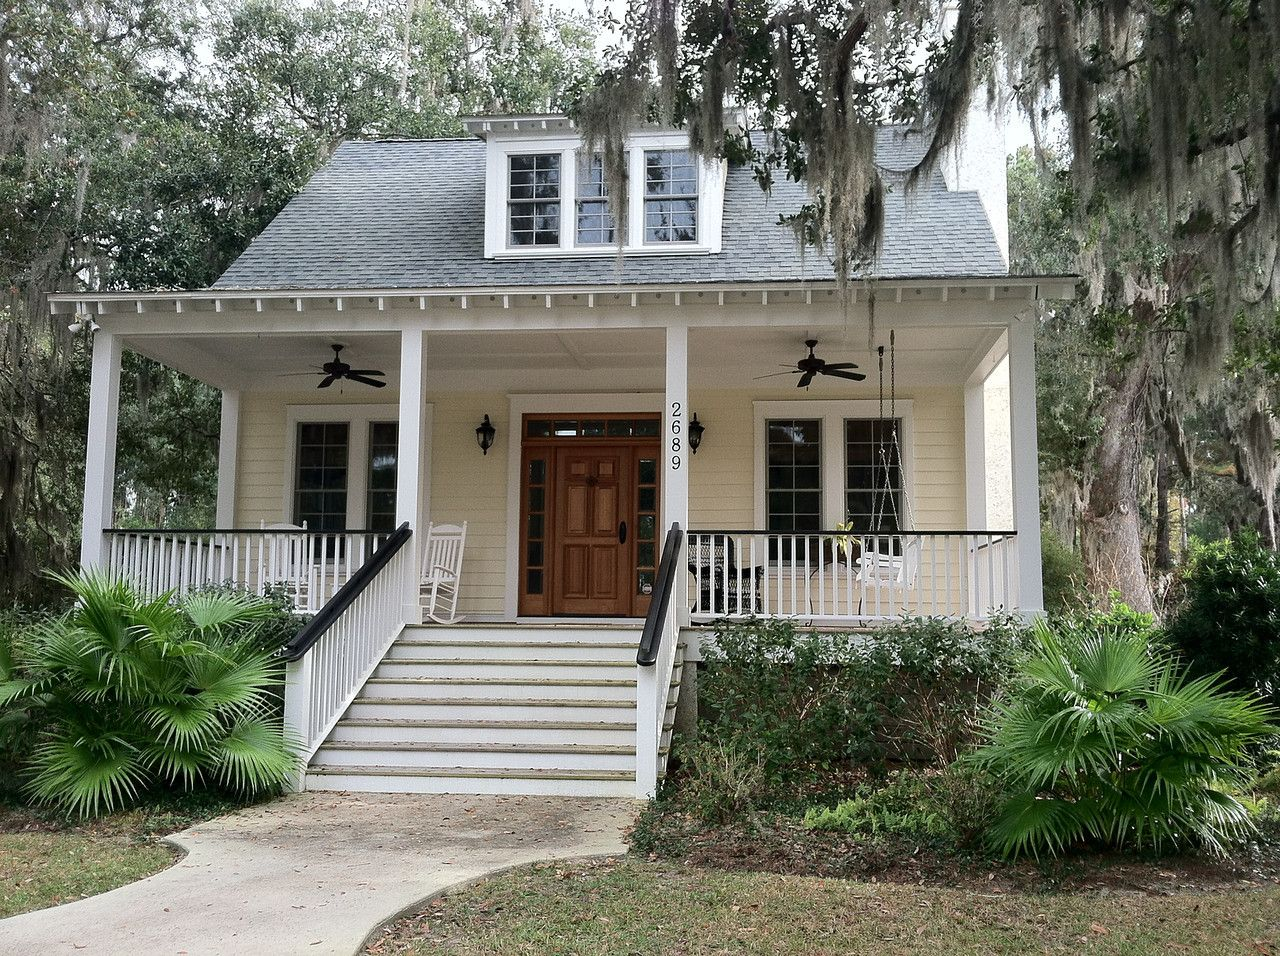 The Sumter Plan By Allison Ramsey Architects Built At Overlook At Battery Creek In Beaufort South Carolina This Plan Is 2262 Heated Square Feet 3 Bedrooms An Southern House Plans Country